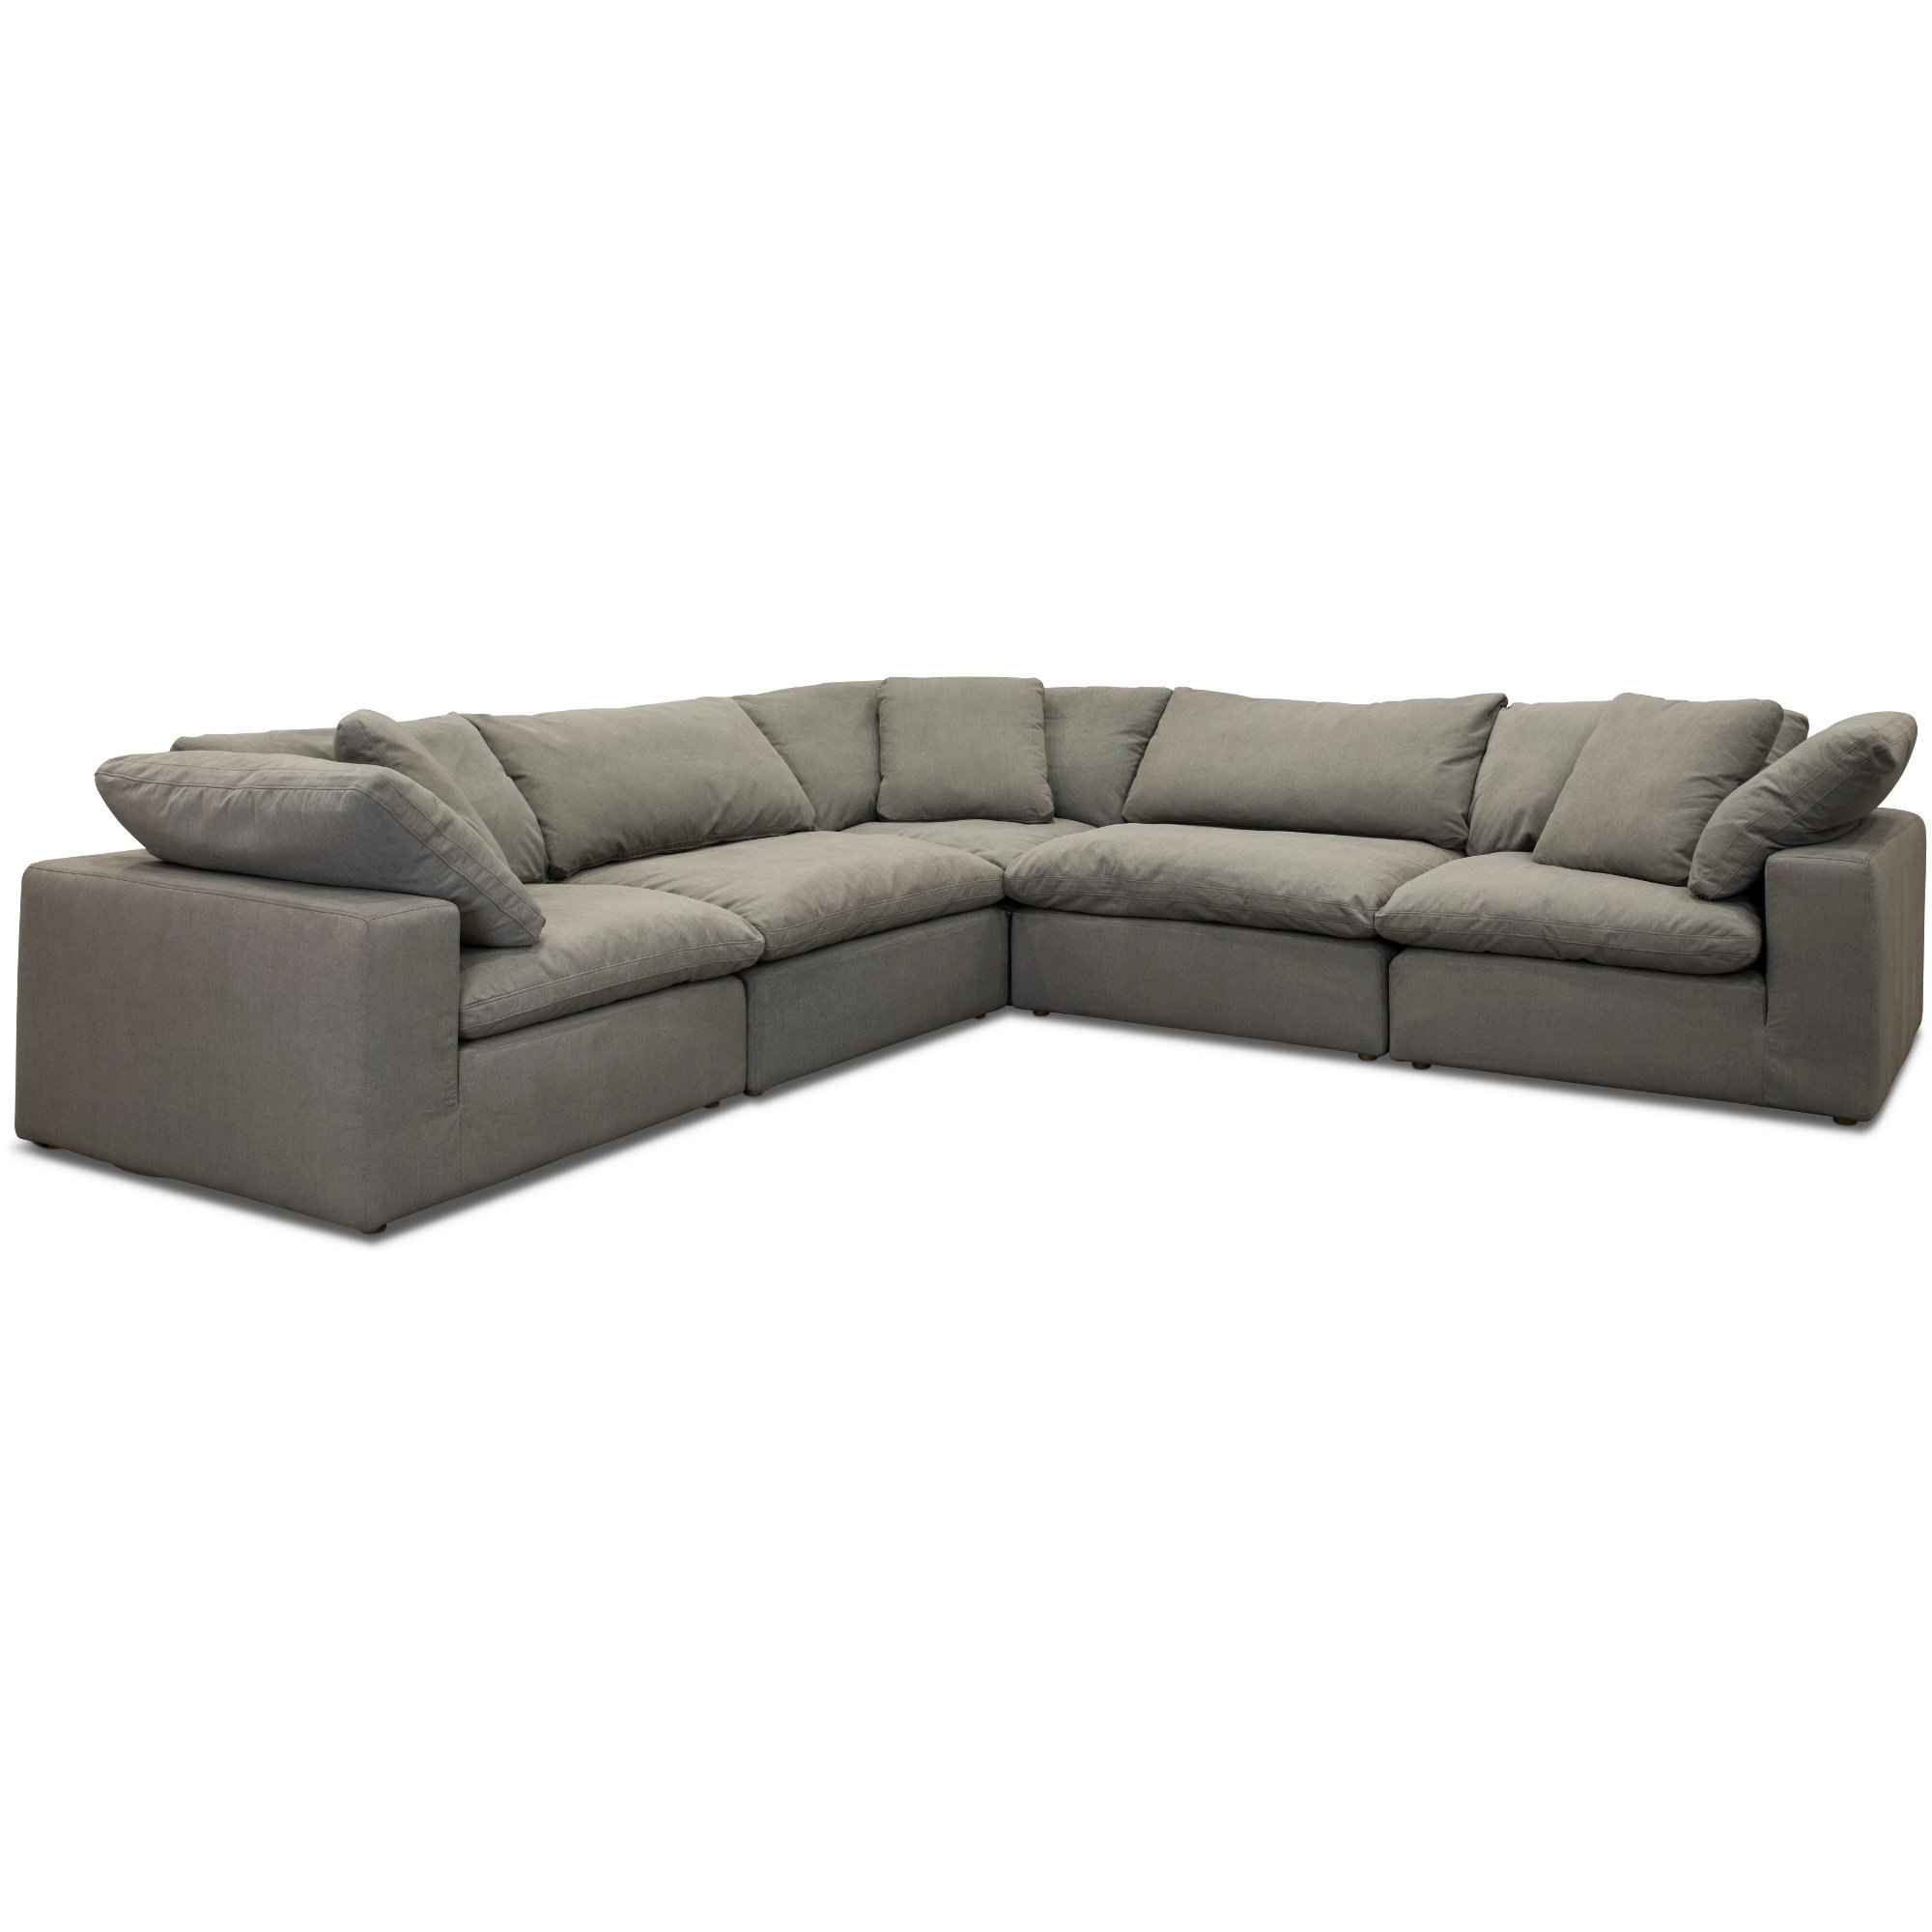 Perfect Product Image Gennaro Pc Lear Sectional Lear Living Rooms Throughout Latest Tenny Dark Grey 2 Piece Left Facing Chaise Sectionals With 2 Headrest (View 12 of 20)